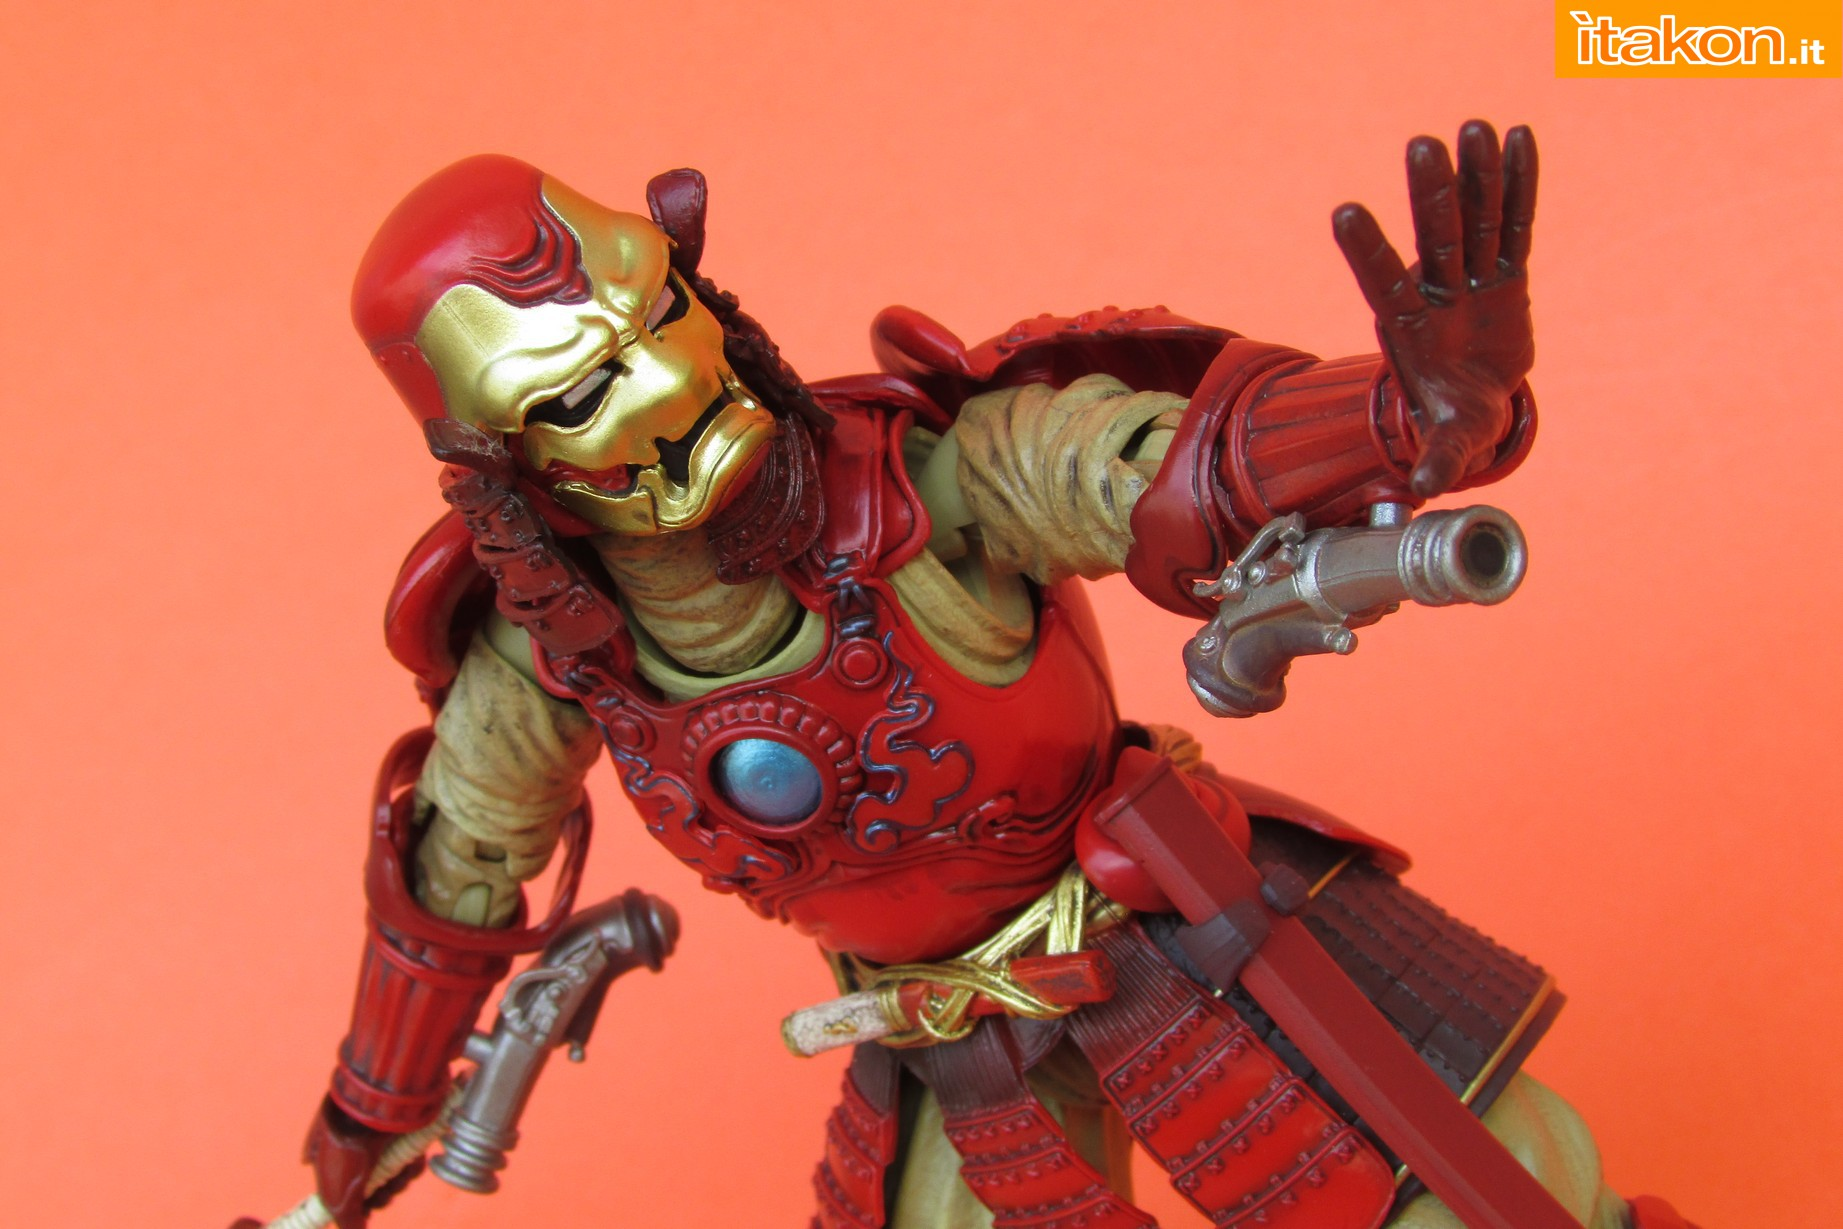 Link a Marvel Comics Koutetsu Samurai Iron Man Mark 3 Meishou MANGA REALIZATION review Bandai Itakon.it55